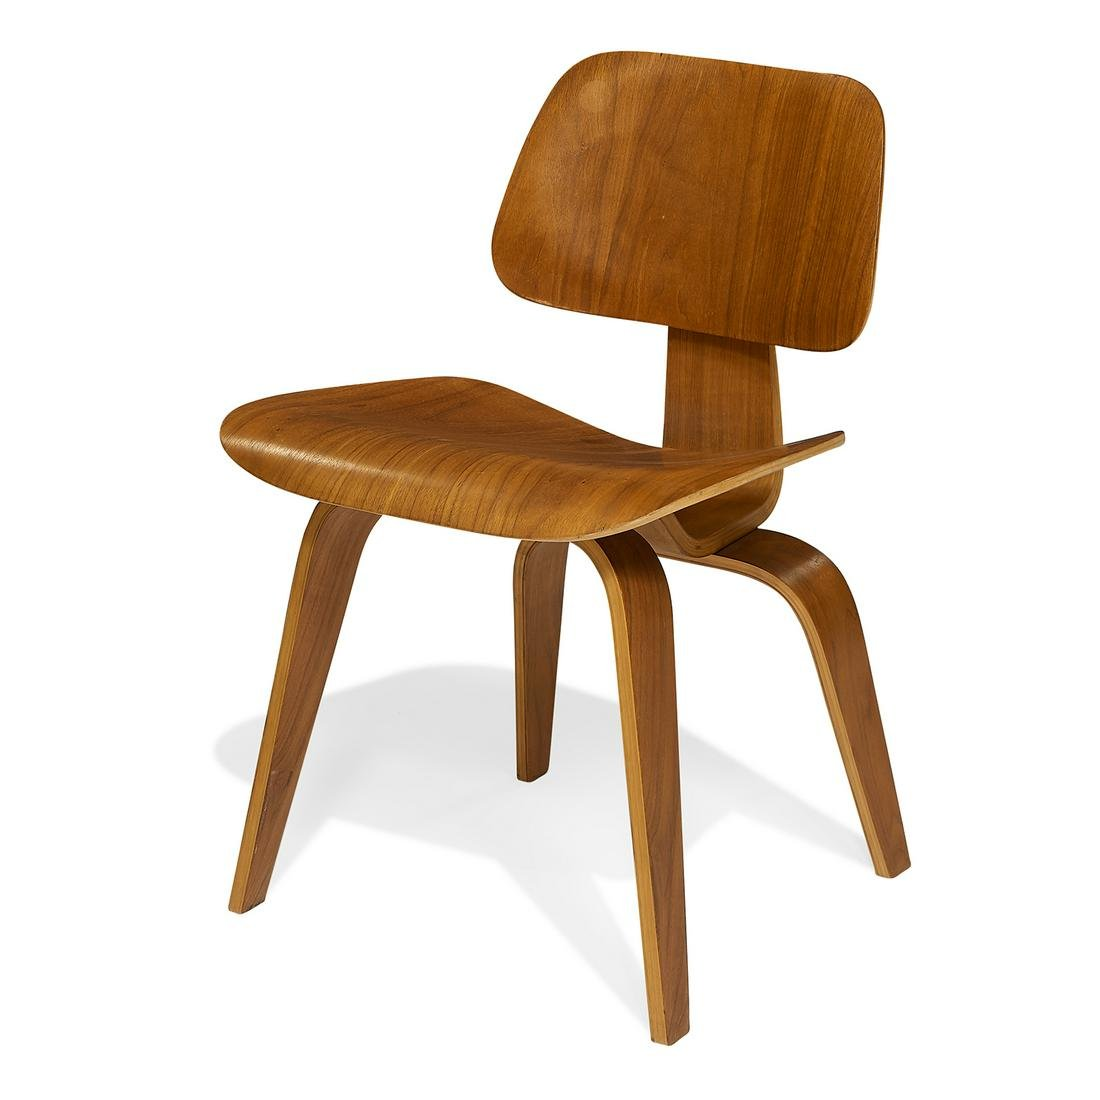 Eames for Evans Products / Herman Miller DCW chair